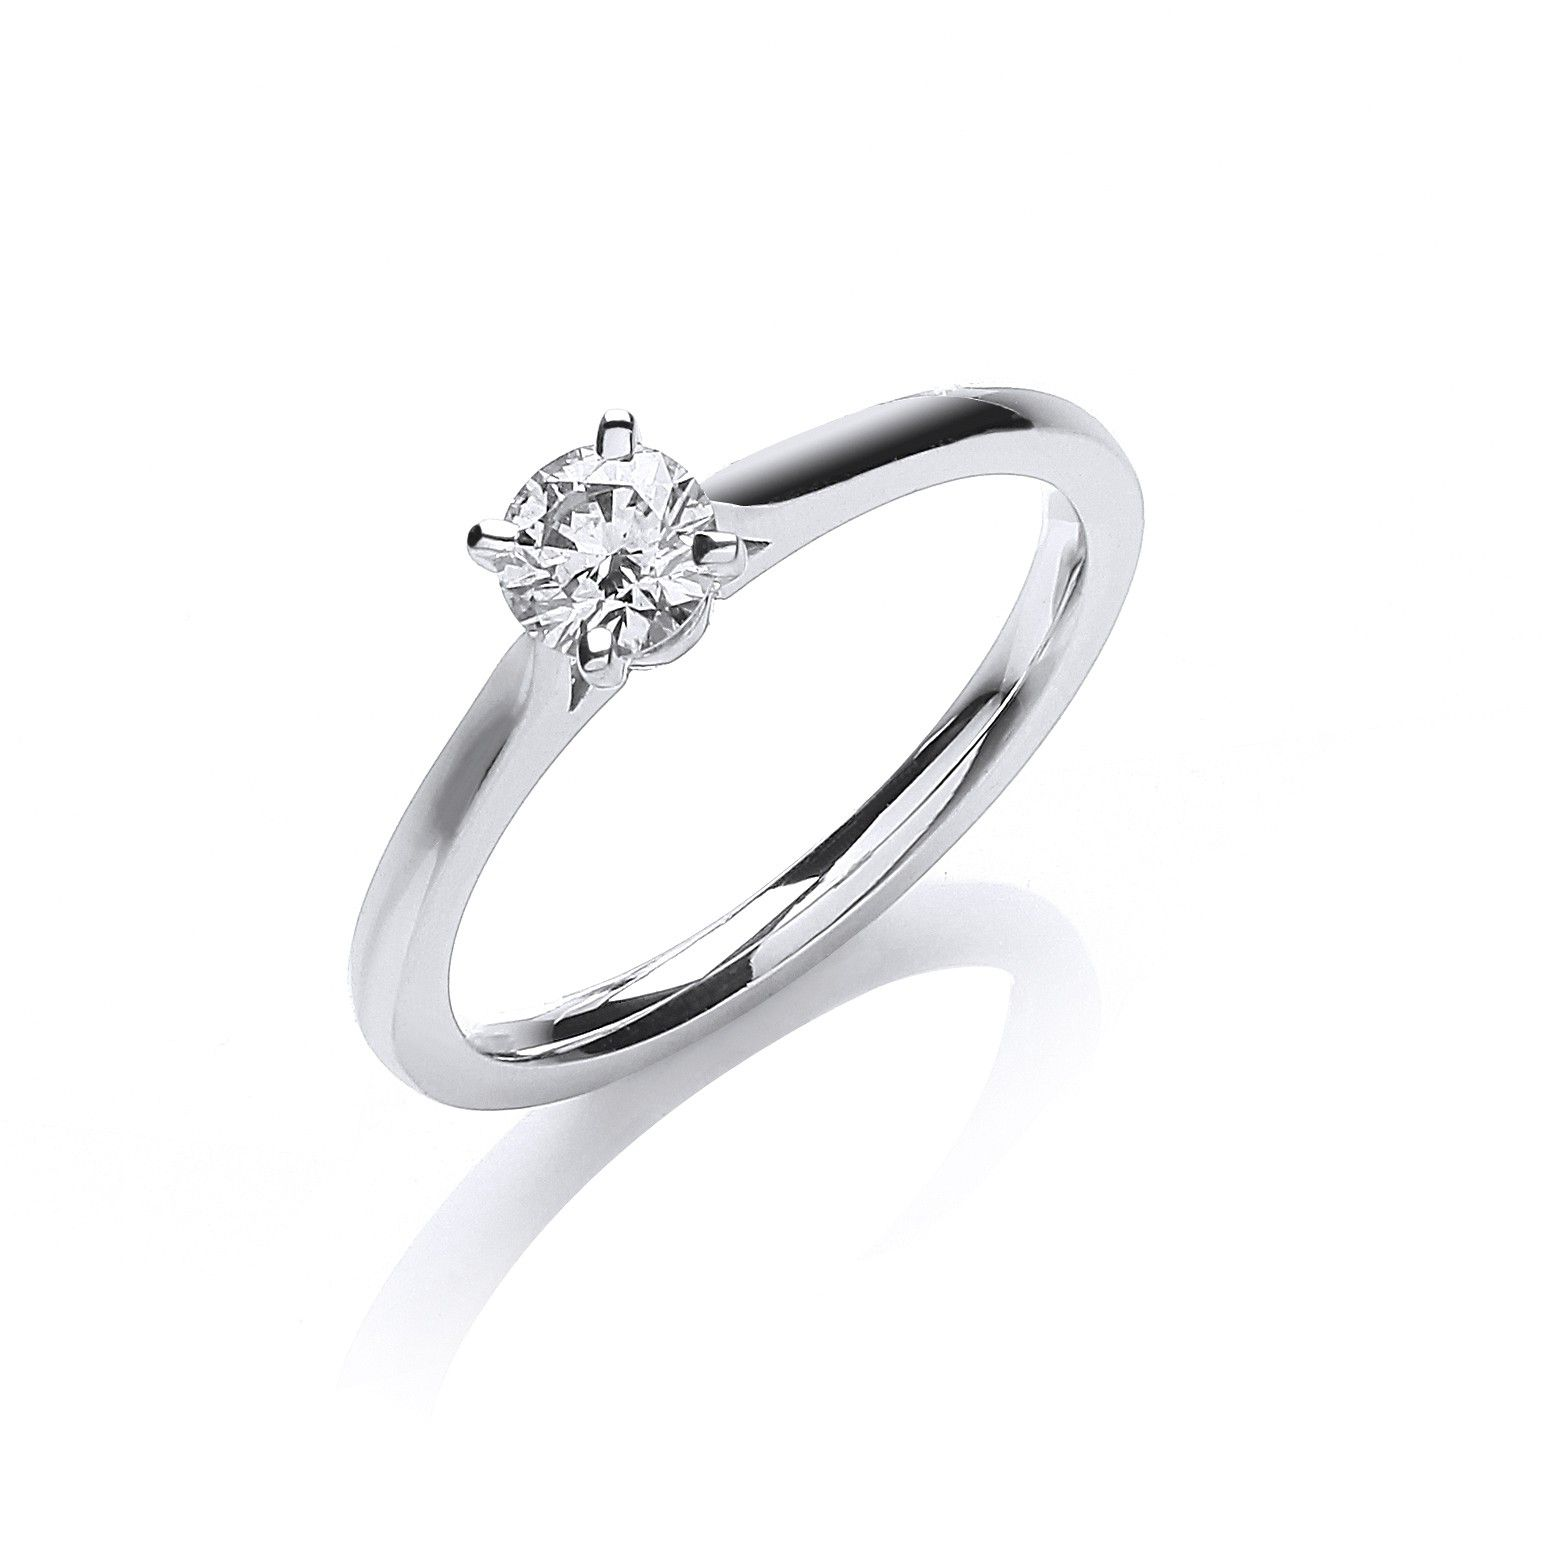 18ct White Gold 0.30ct Certificated Solitaire Ring